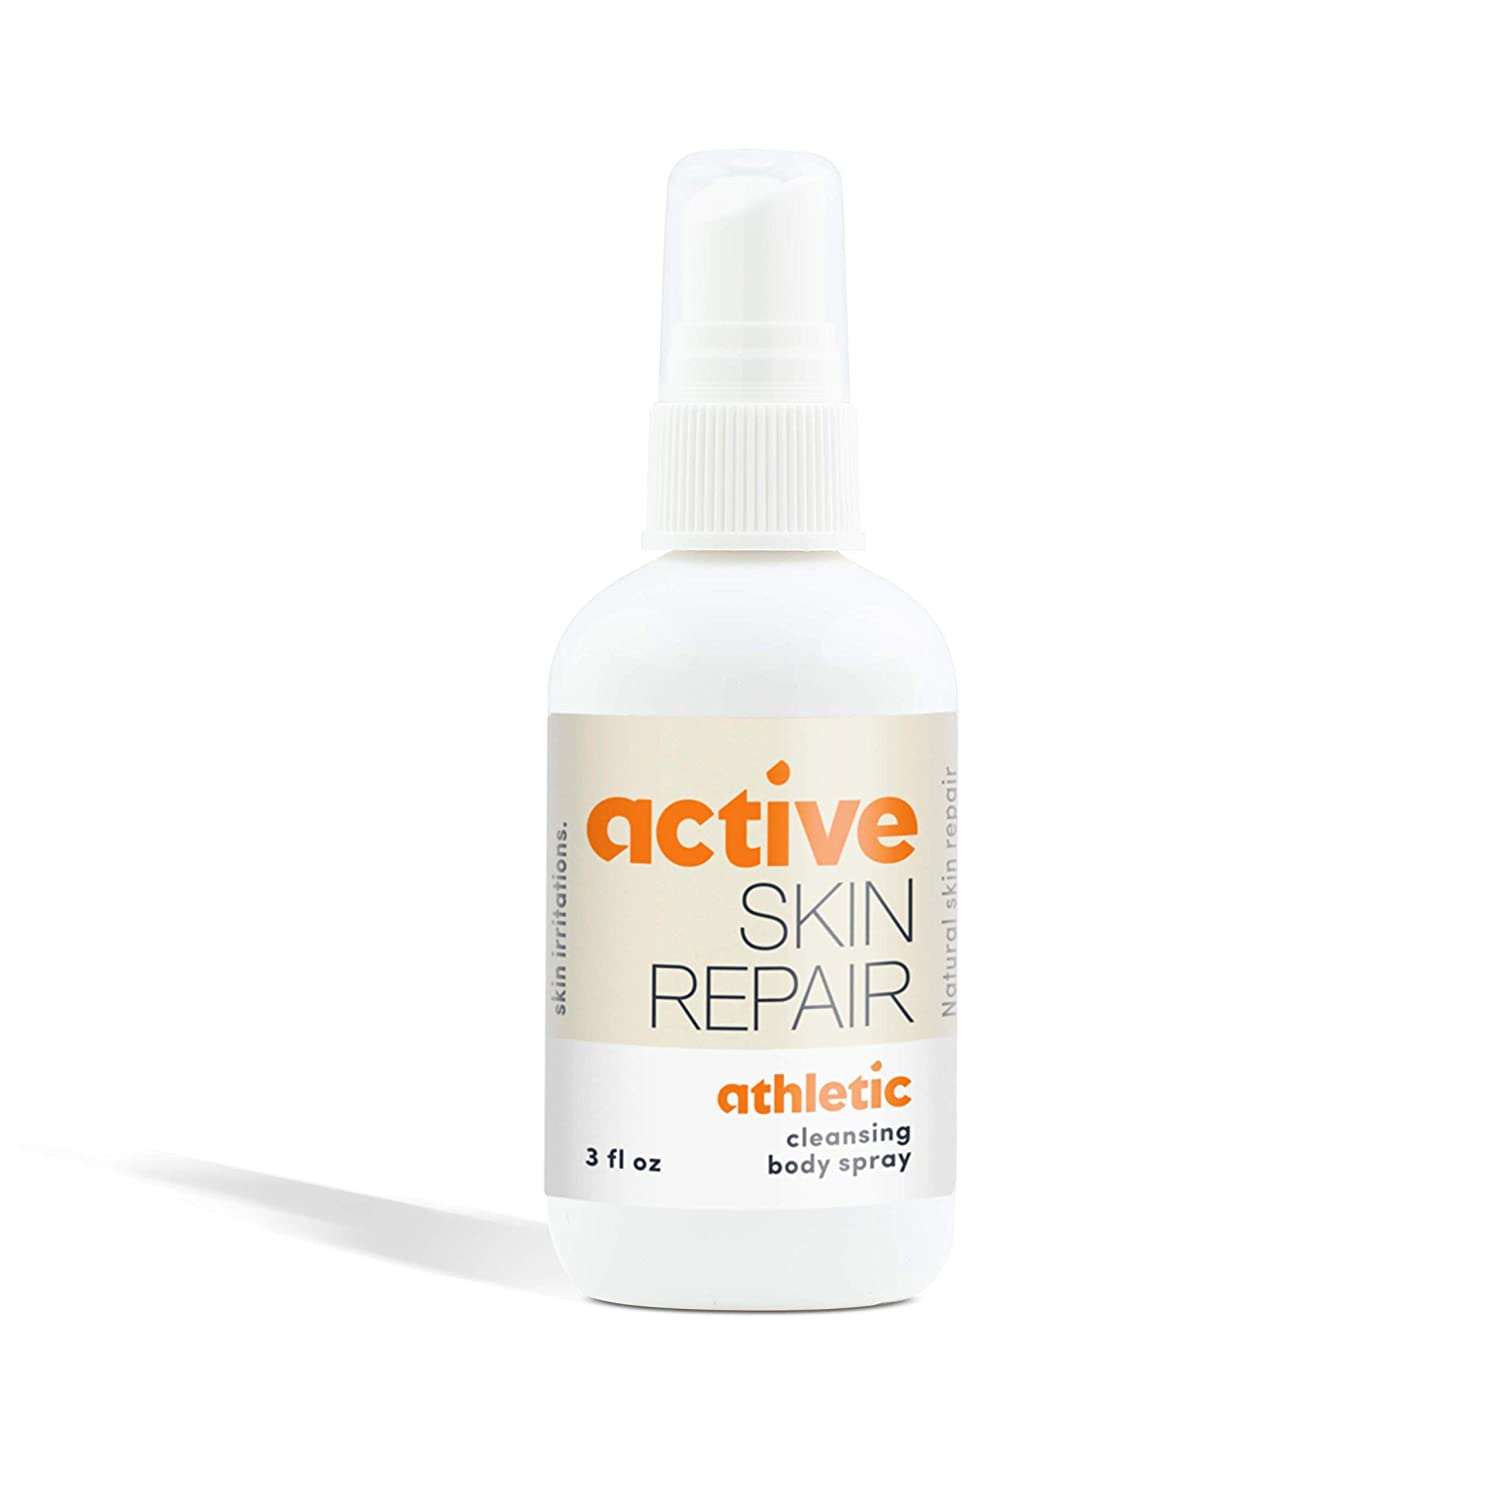 Active Athletic Cleansing Body Spray - Natural, Non-Toxic, and No Sting After Sport Treatment for Athletes Foot, Ringworm, Jock Itch, Fungus, and Other Skin Irritations, Doctor Recommended (3 oz)